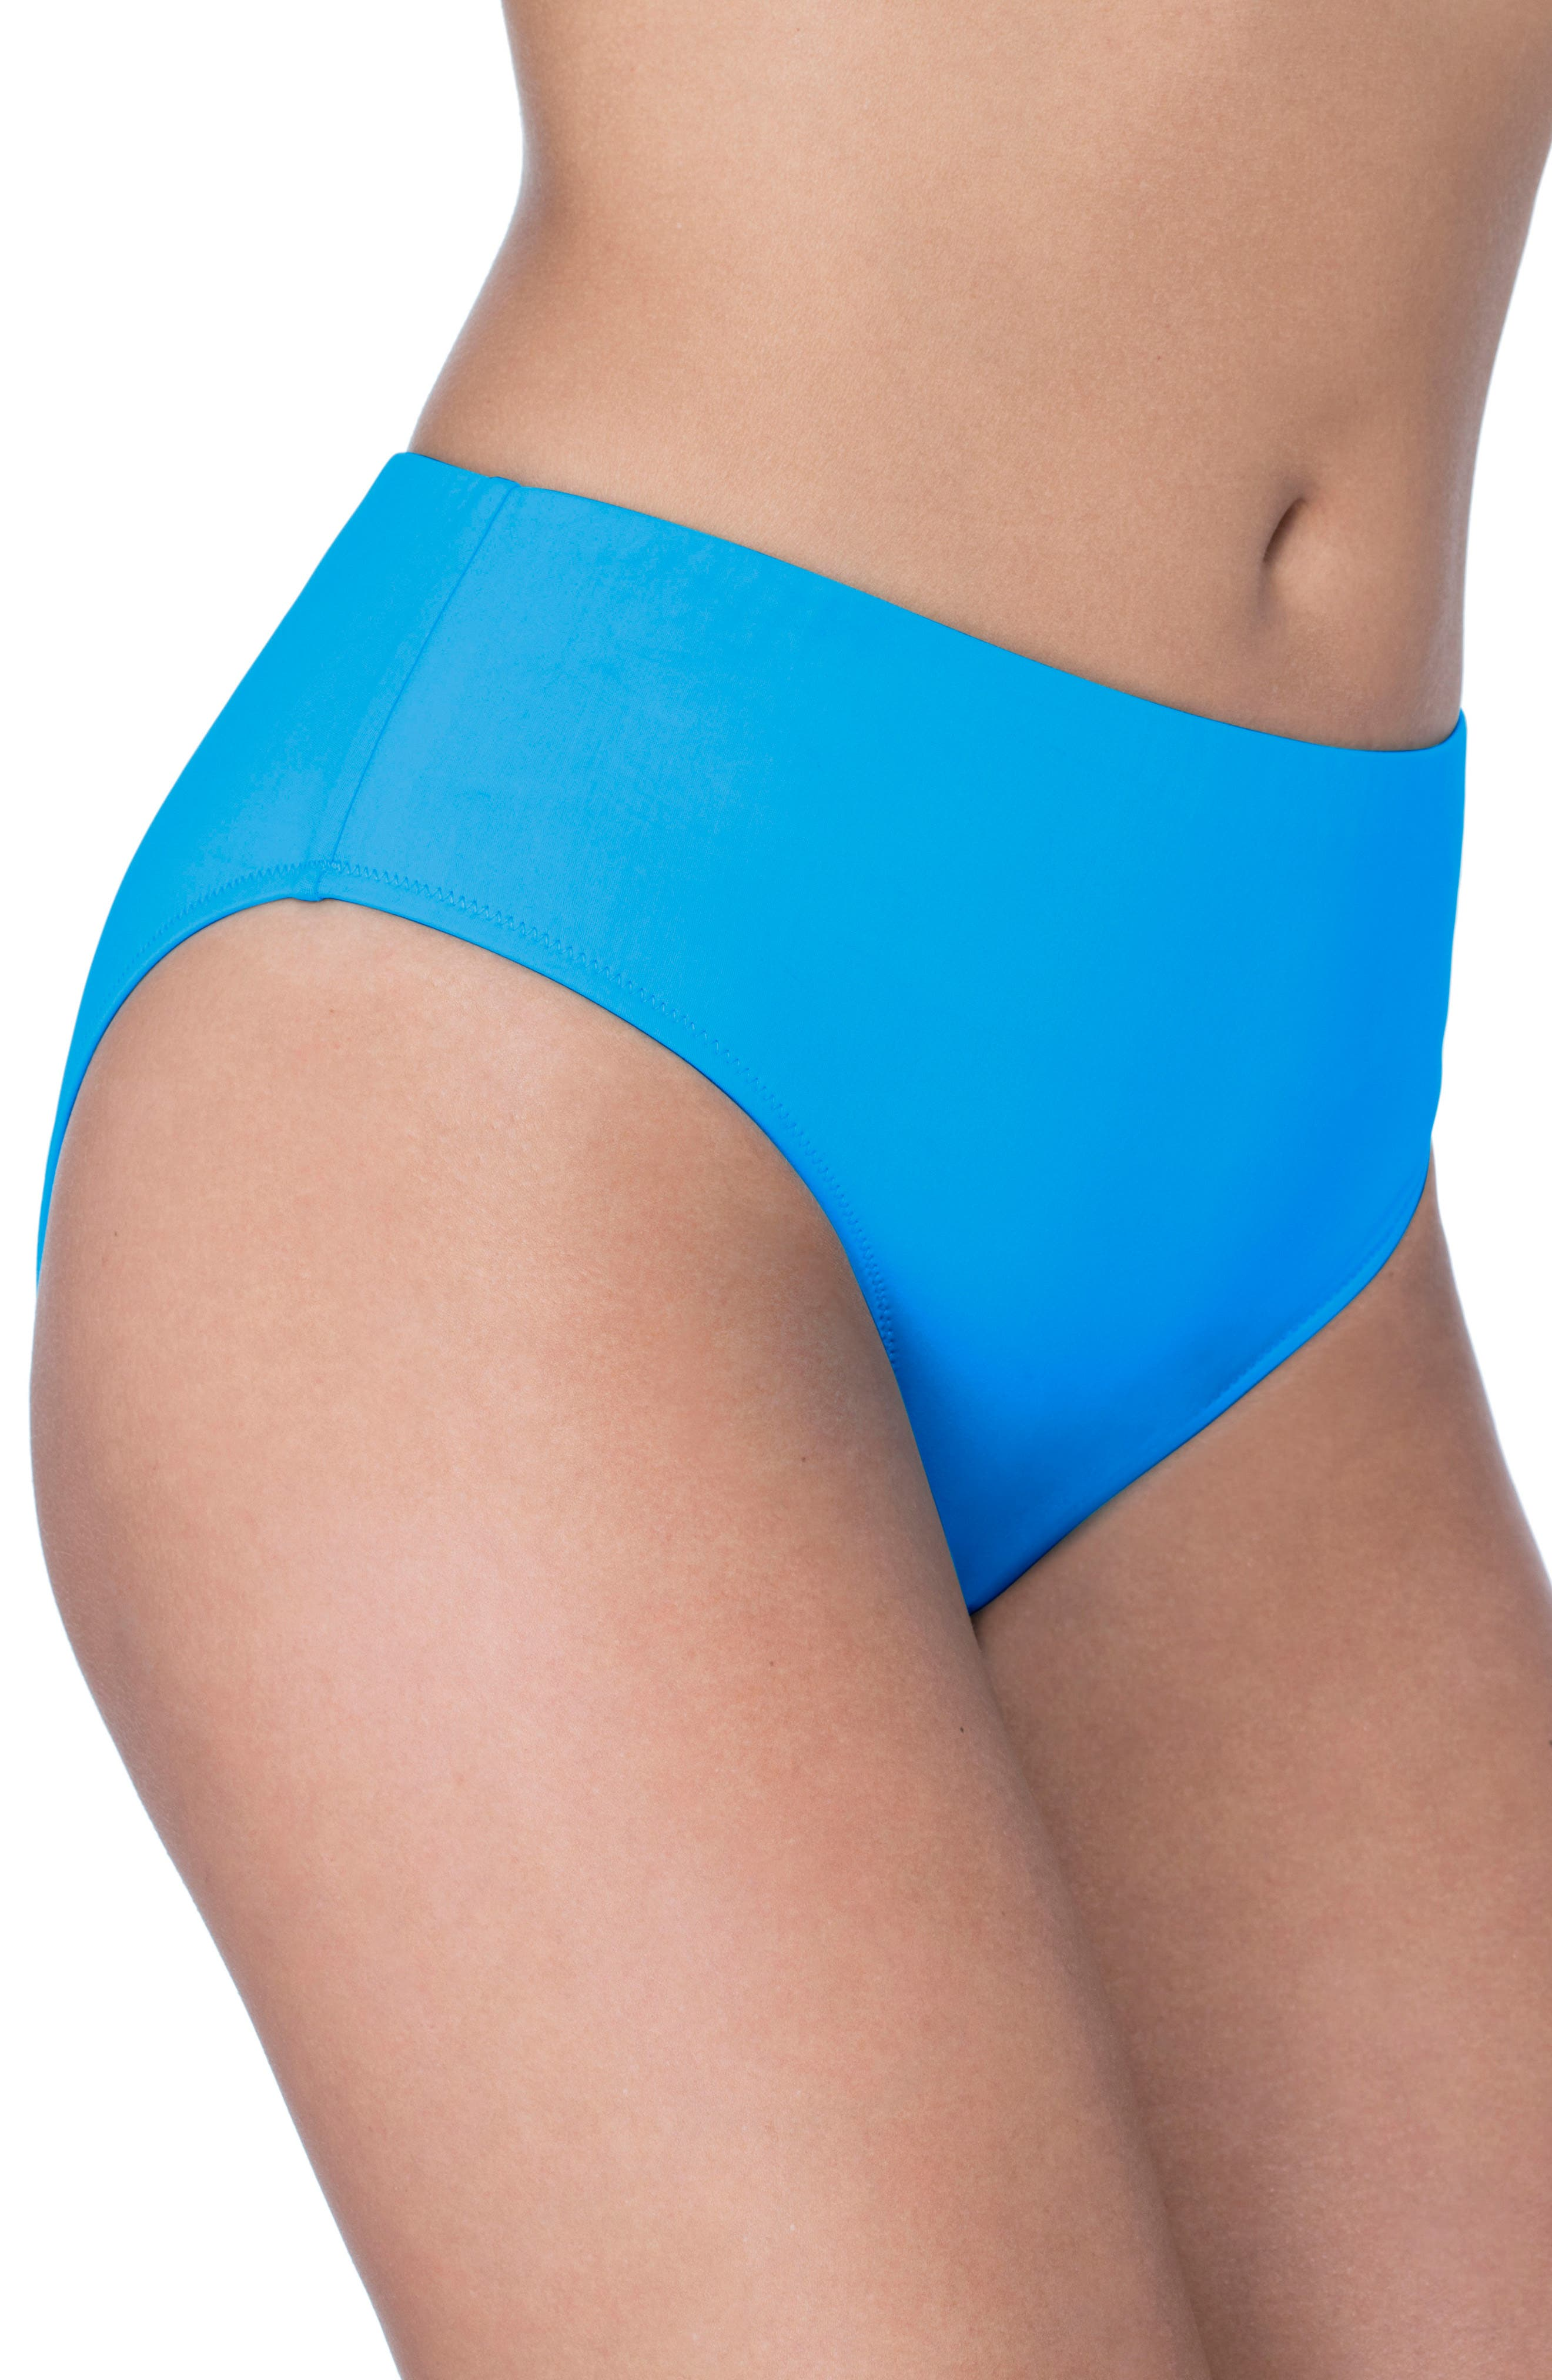 Hipster Bikini Bottoms,                             Alternate thumbnail 3, color,                             PEACOCK